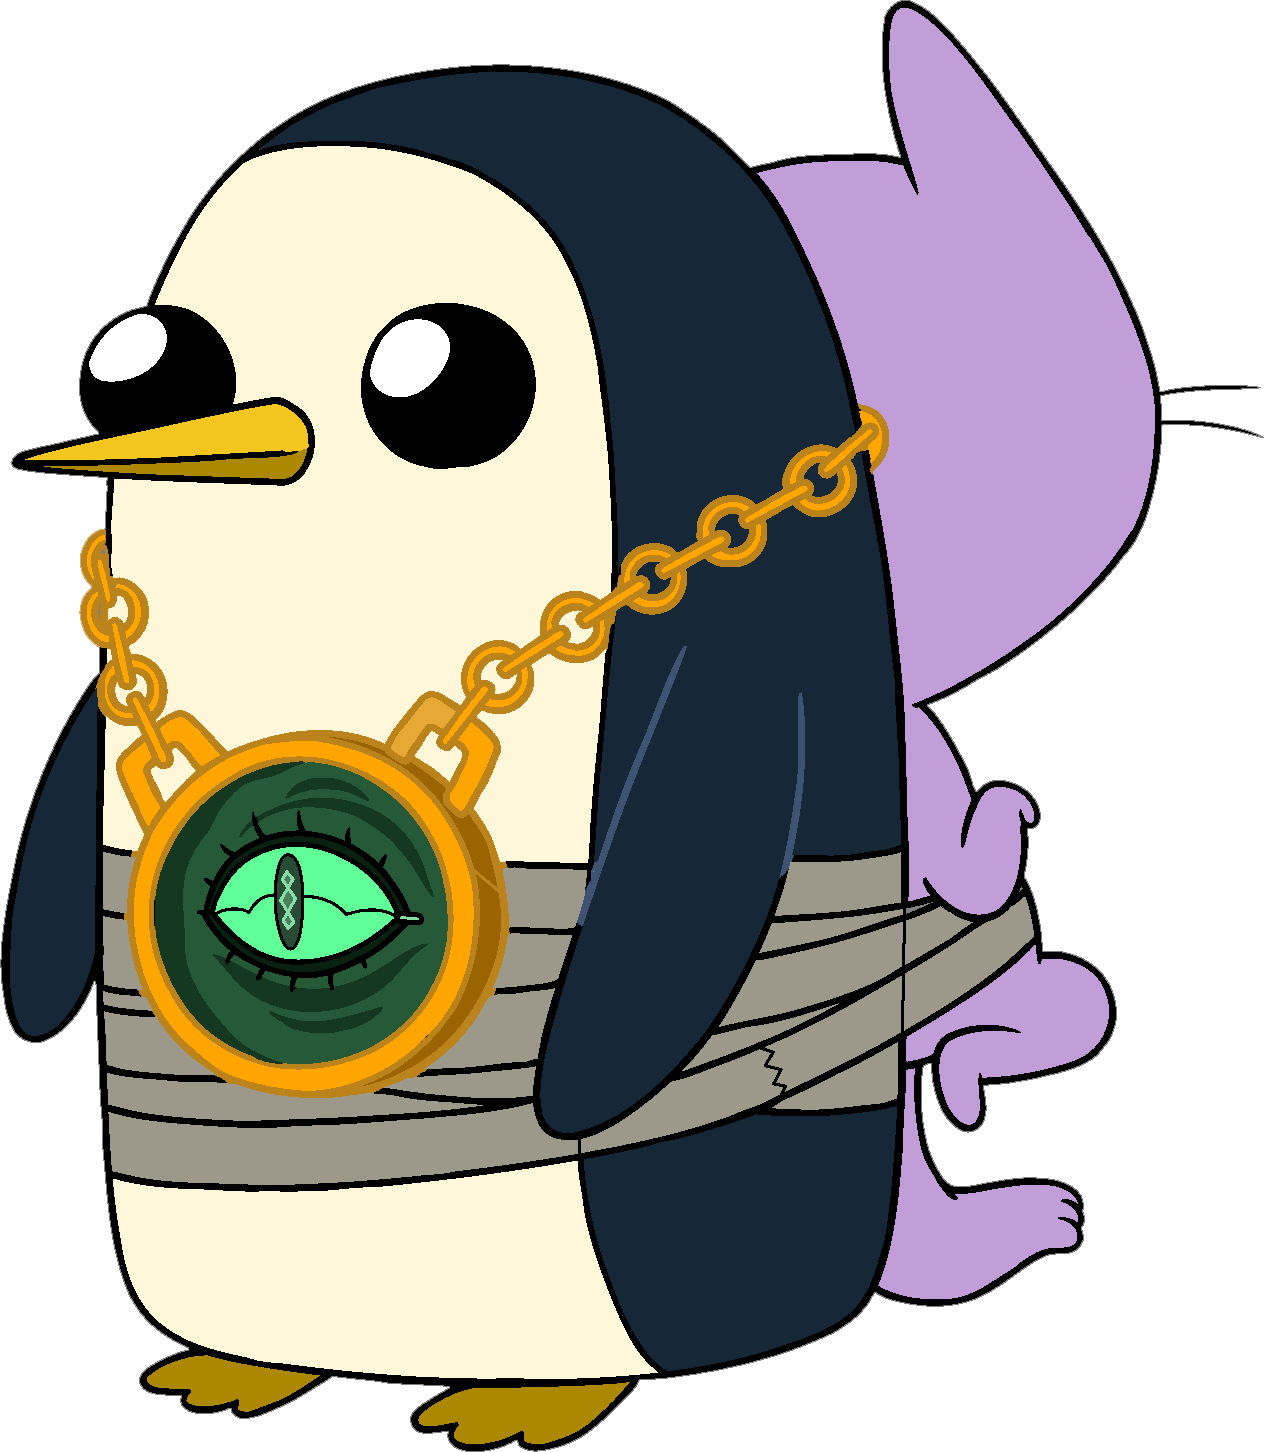 Gunter Wearing Kitten And The Demonic Wishing Eye Adventure Time Characters Adventure Time Gunter Adventure Time